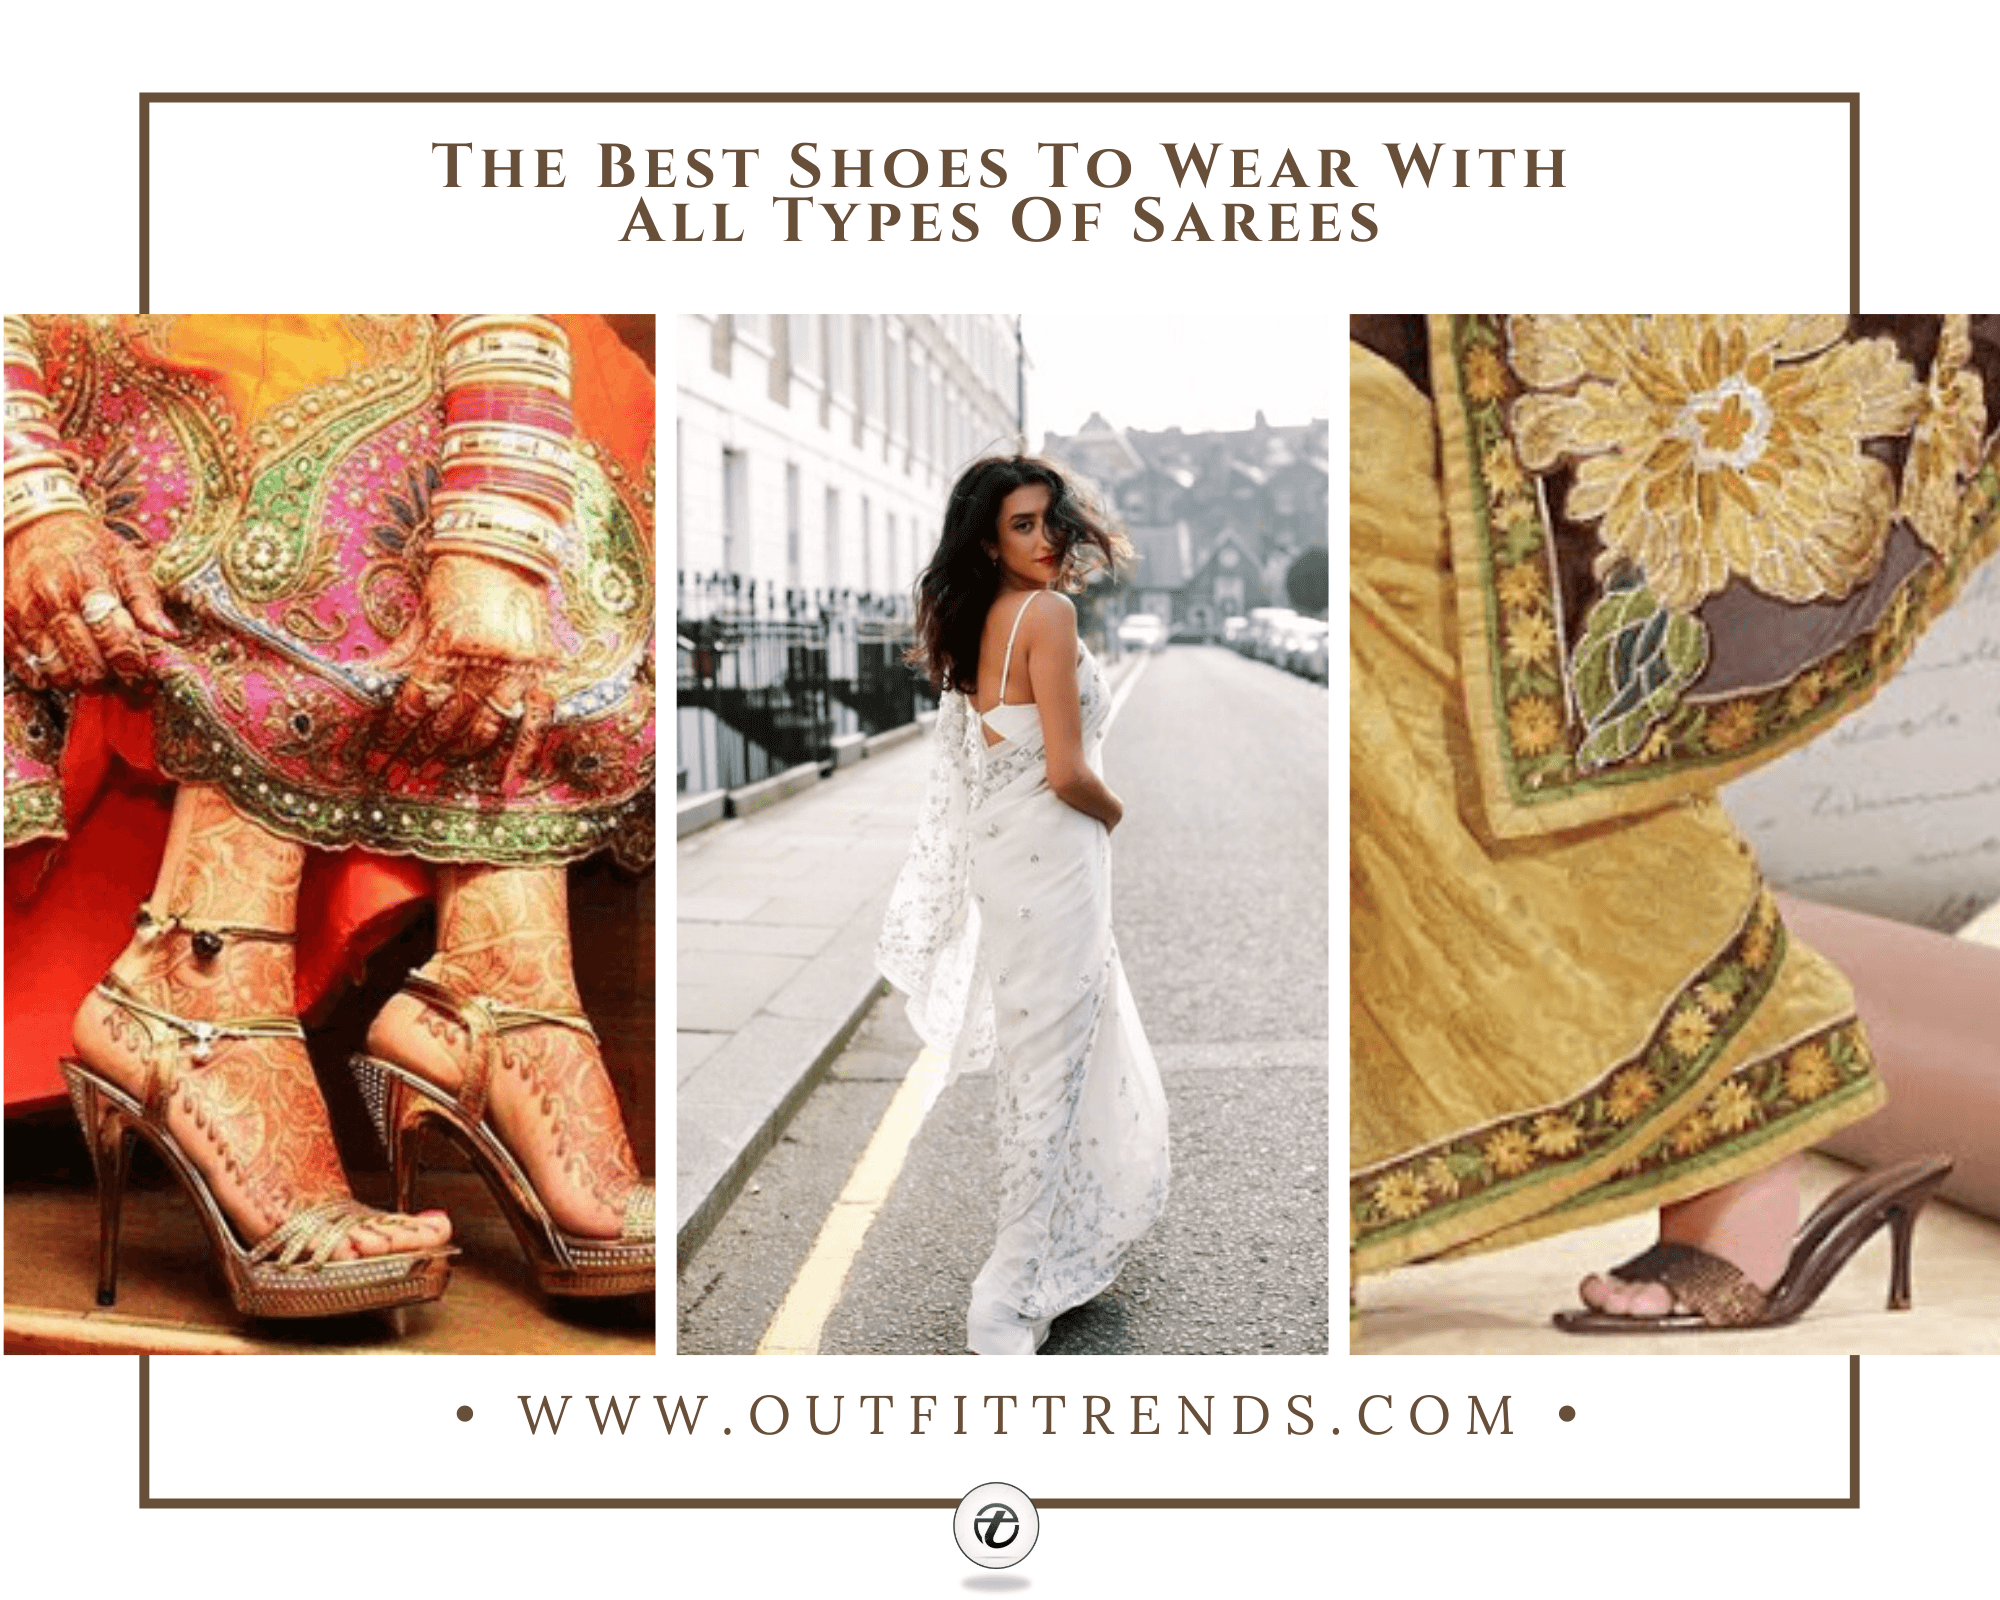 10 Best Shoes To Wear With Sarees Of Different Types